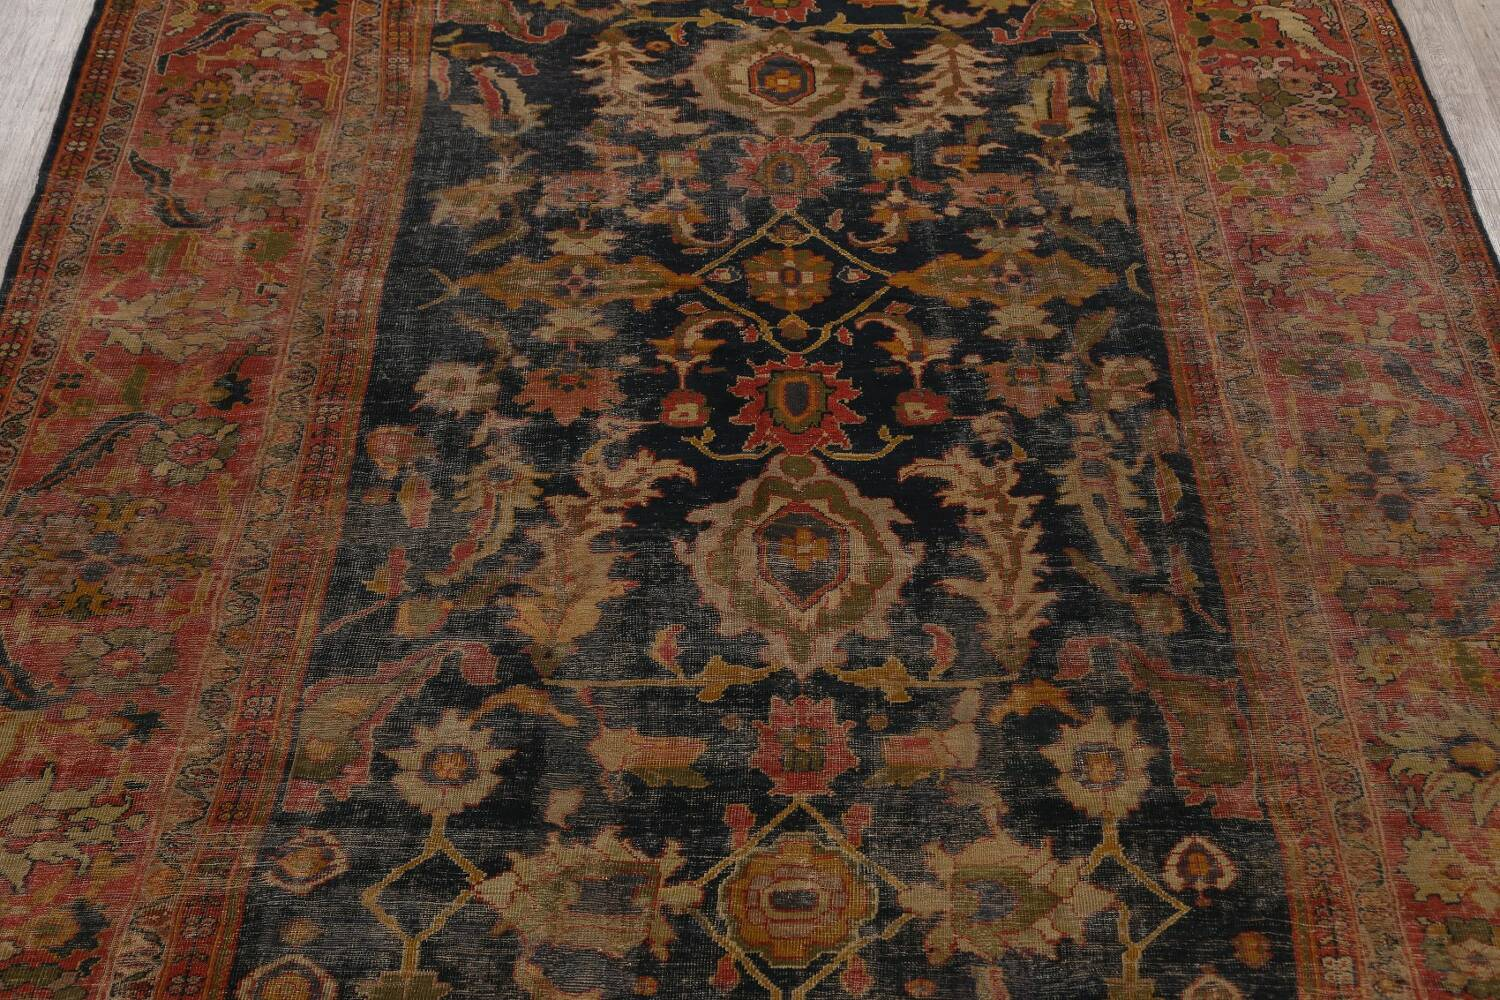 Antique Vegetable Dye Sultanabad Persian Area Rug 11x14 Large image 3